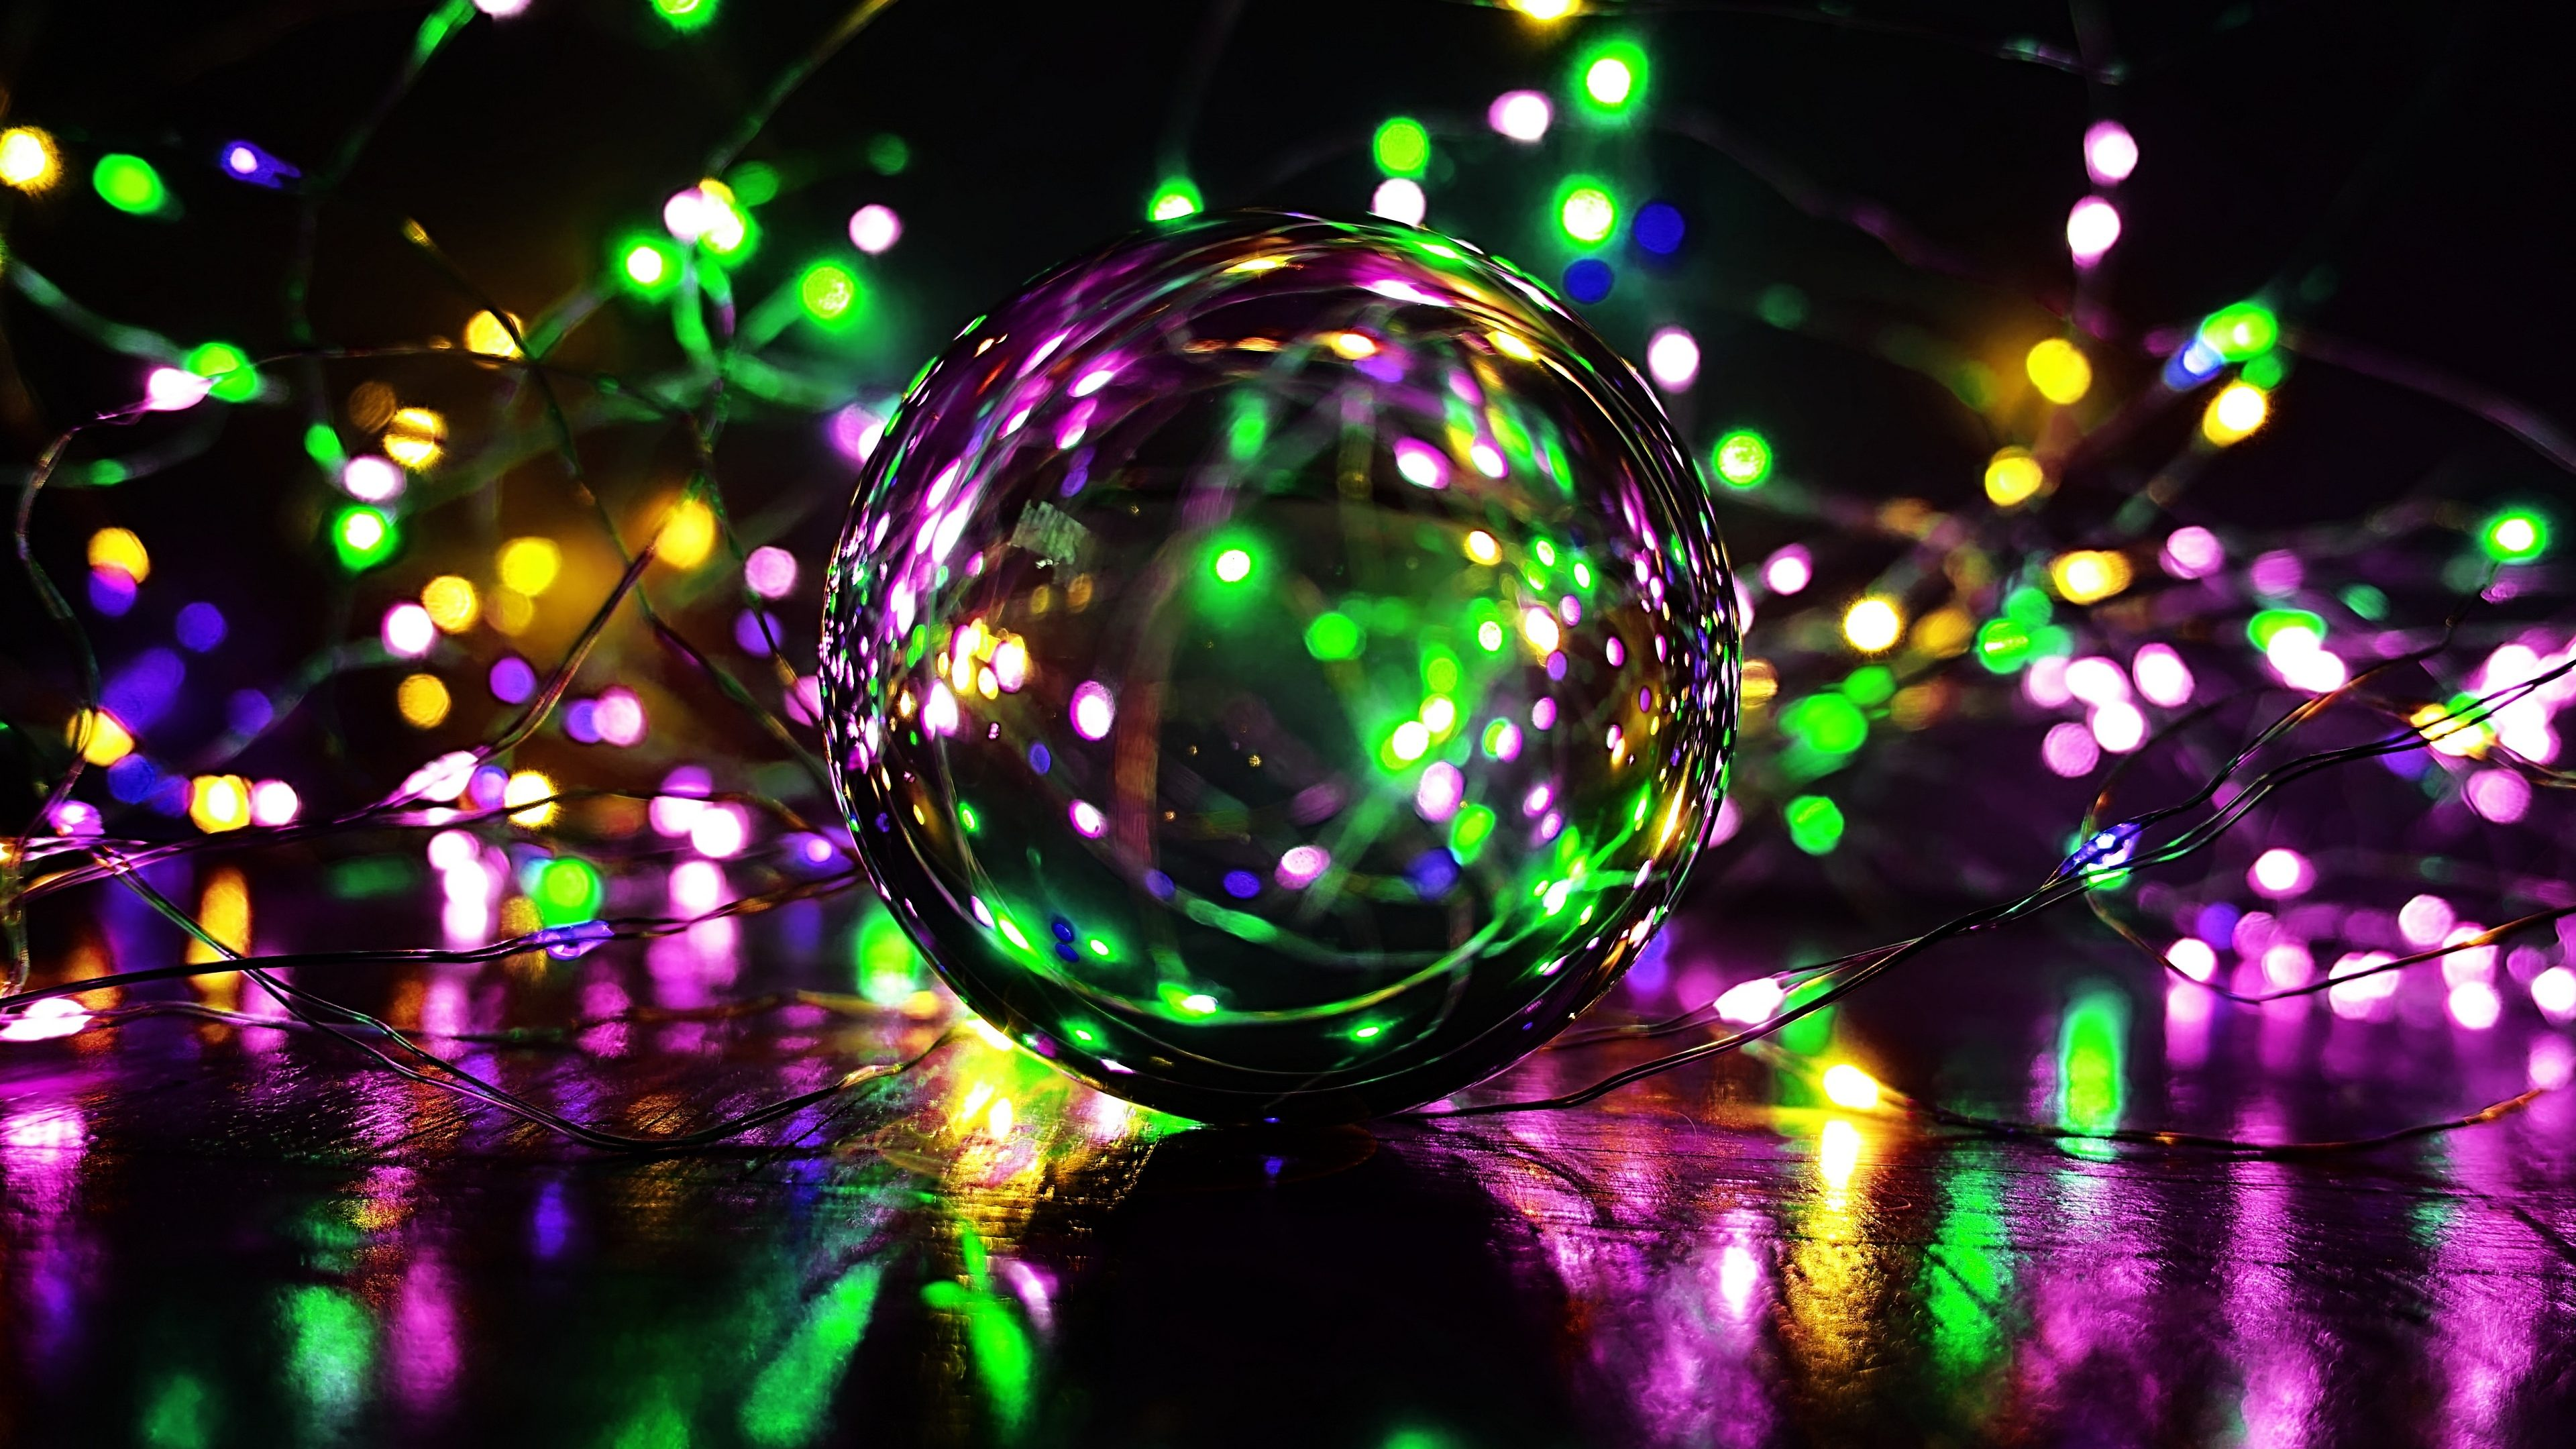 Crystal Ball Photography 4k Wallpaper Hd Wallpaper Background